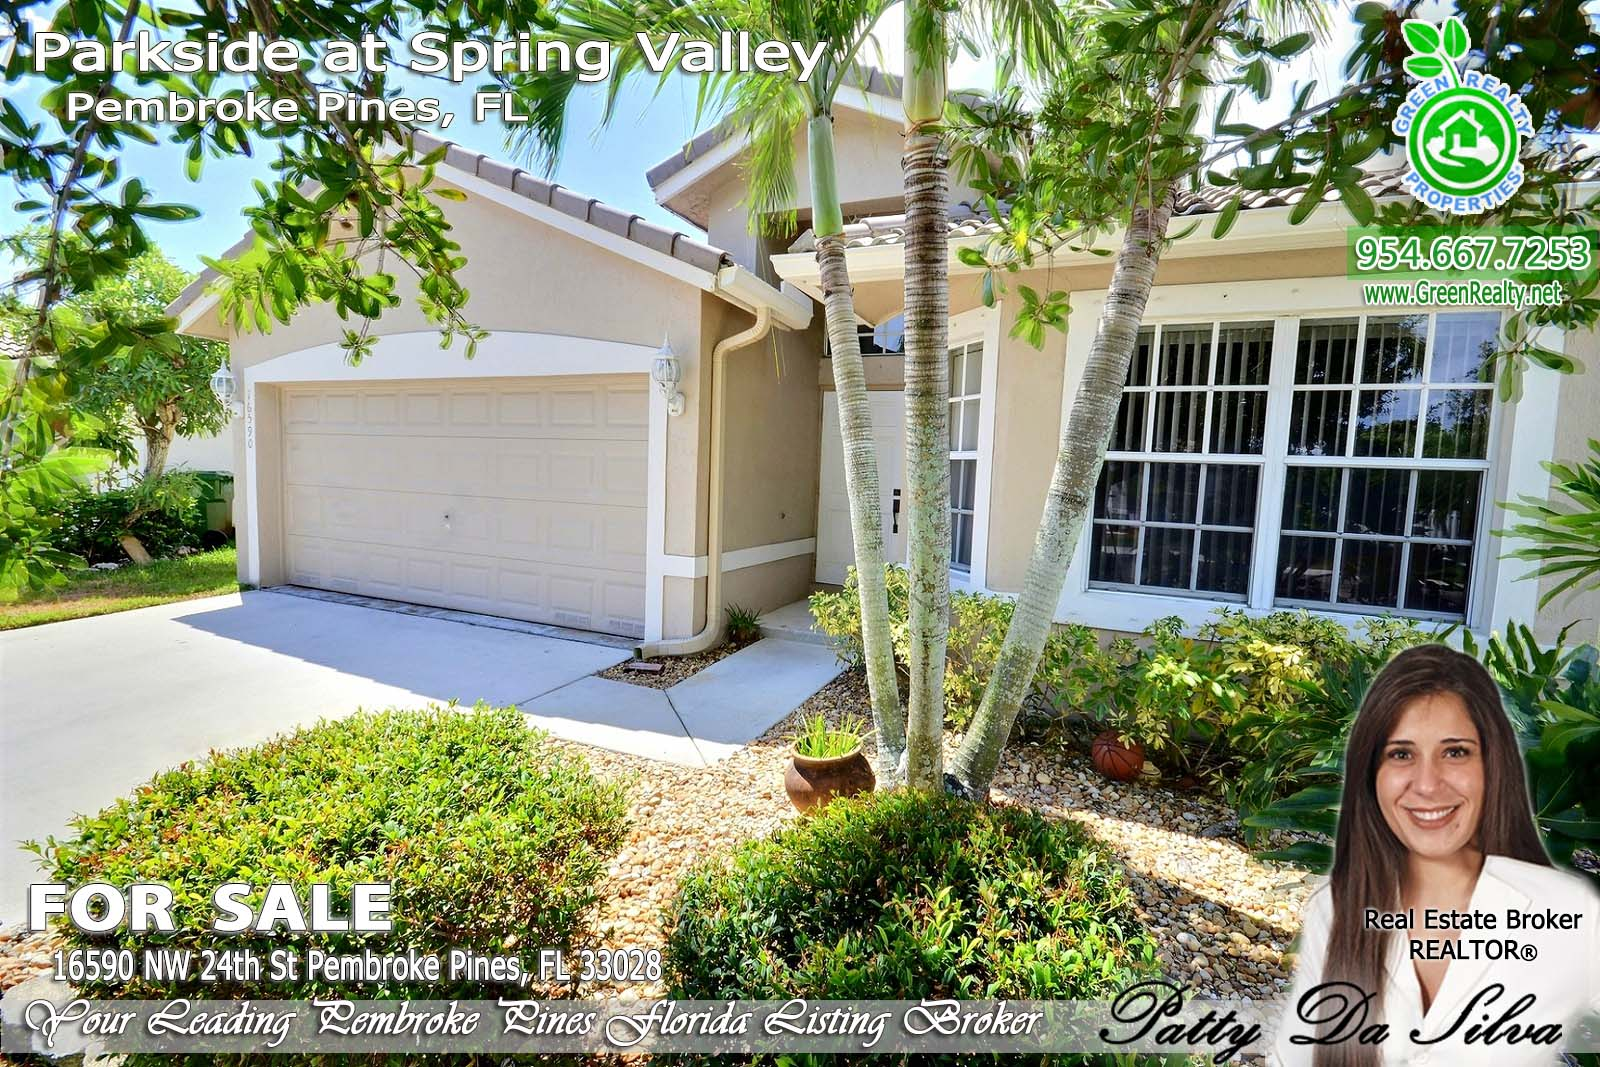 Parkside at Spring Valley Homes For Sale - Pembroke Pines Florida (6)